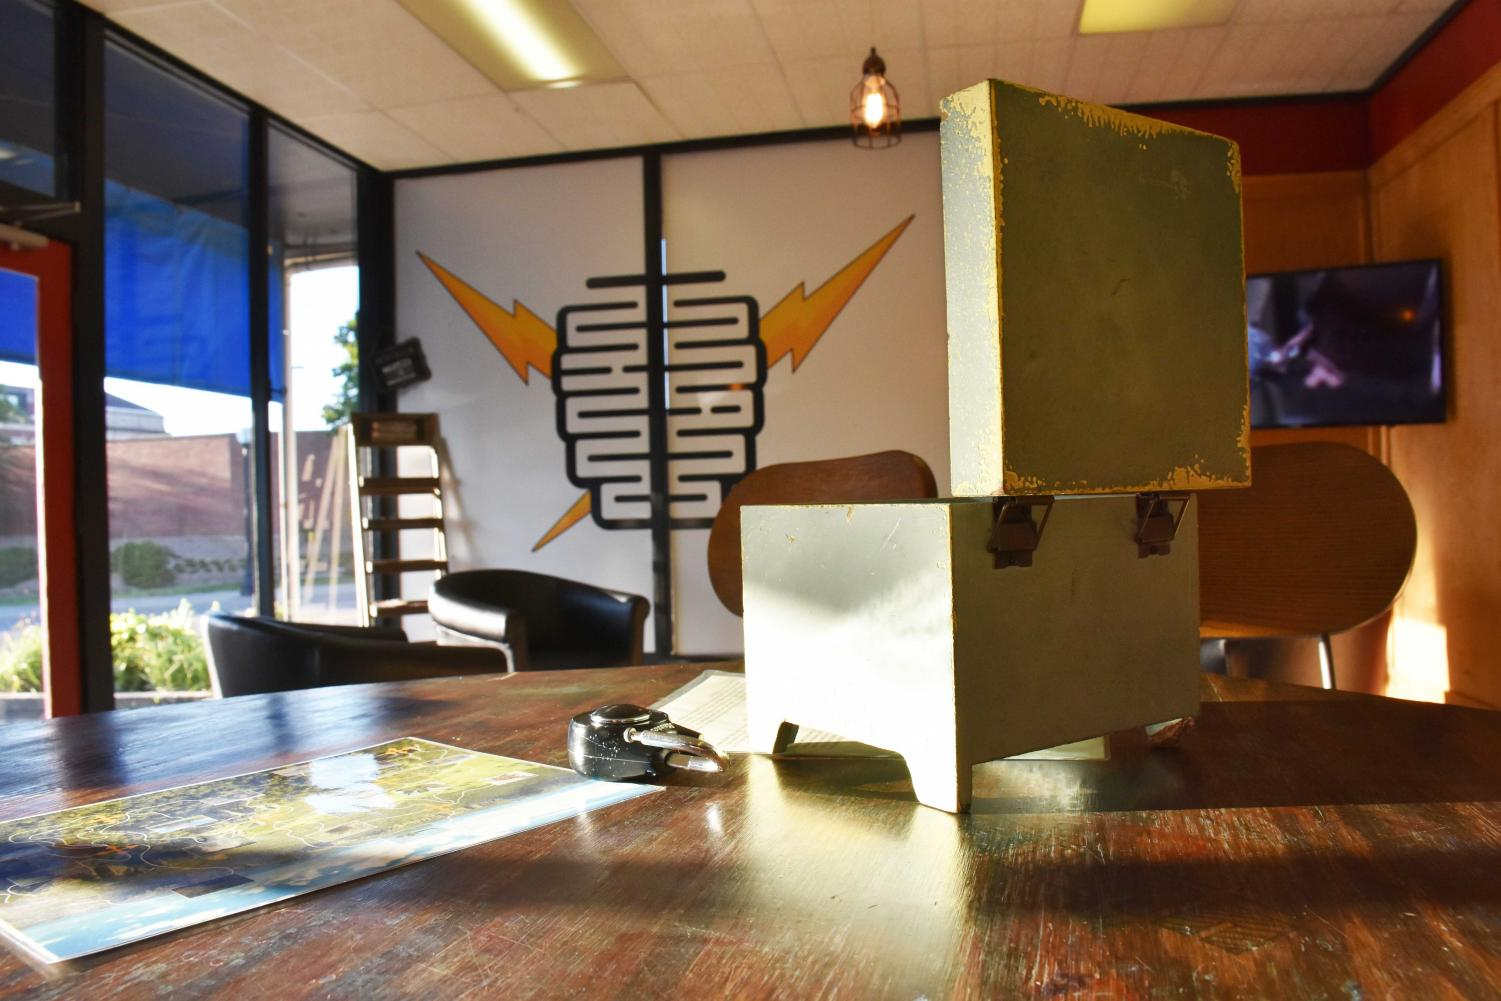 One Hour To Breakout At Brainstorm Escapes In Champaign The Daily Illini